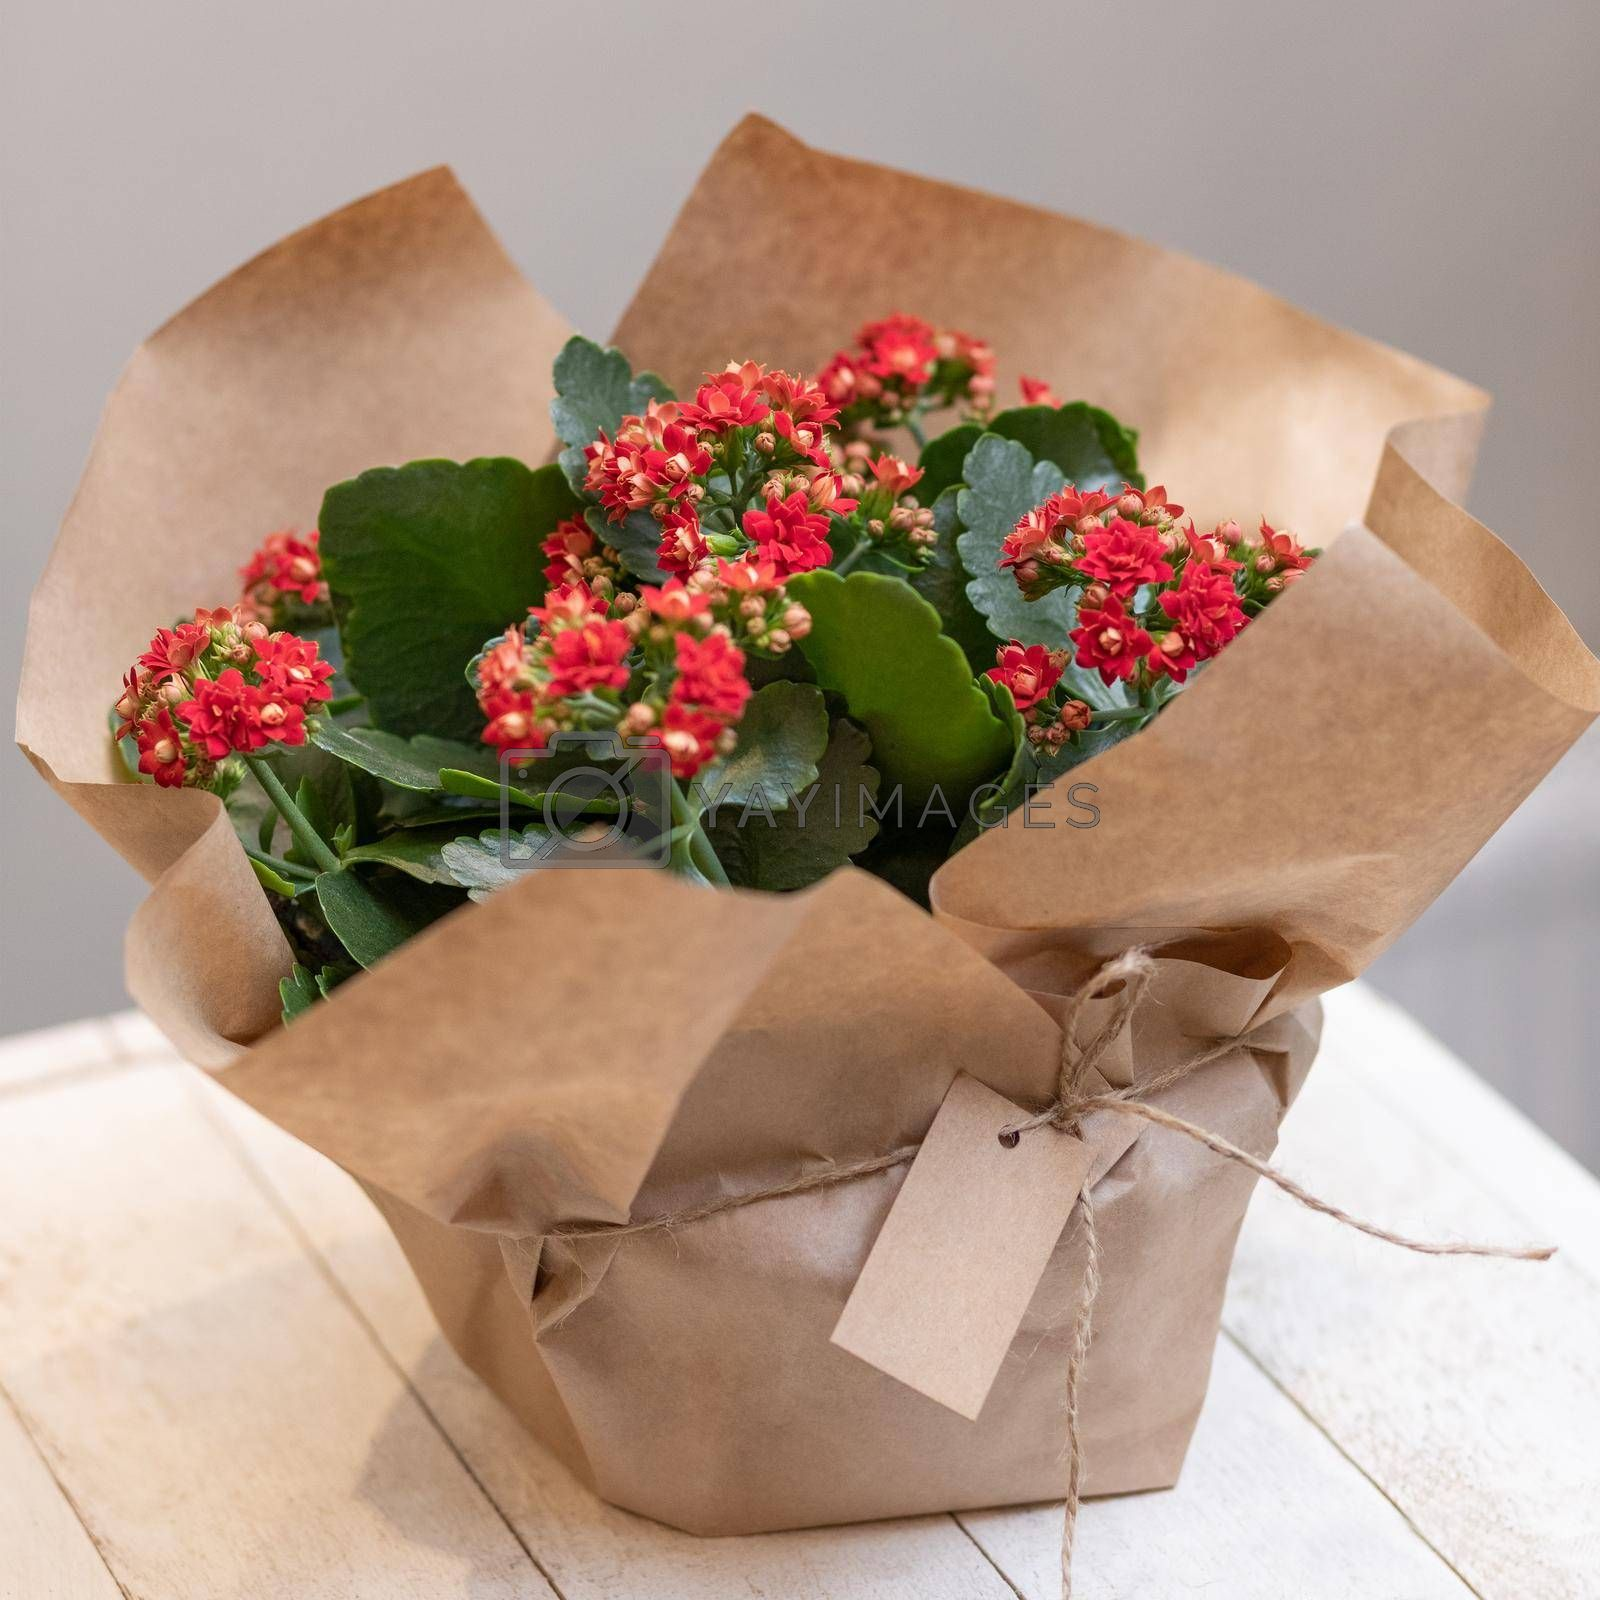 Colorful Widow's-thrill, Kalanchoe flowers in the paper bouquet